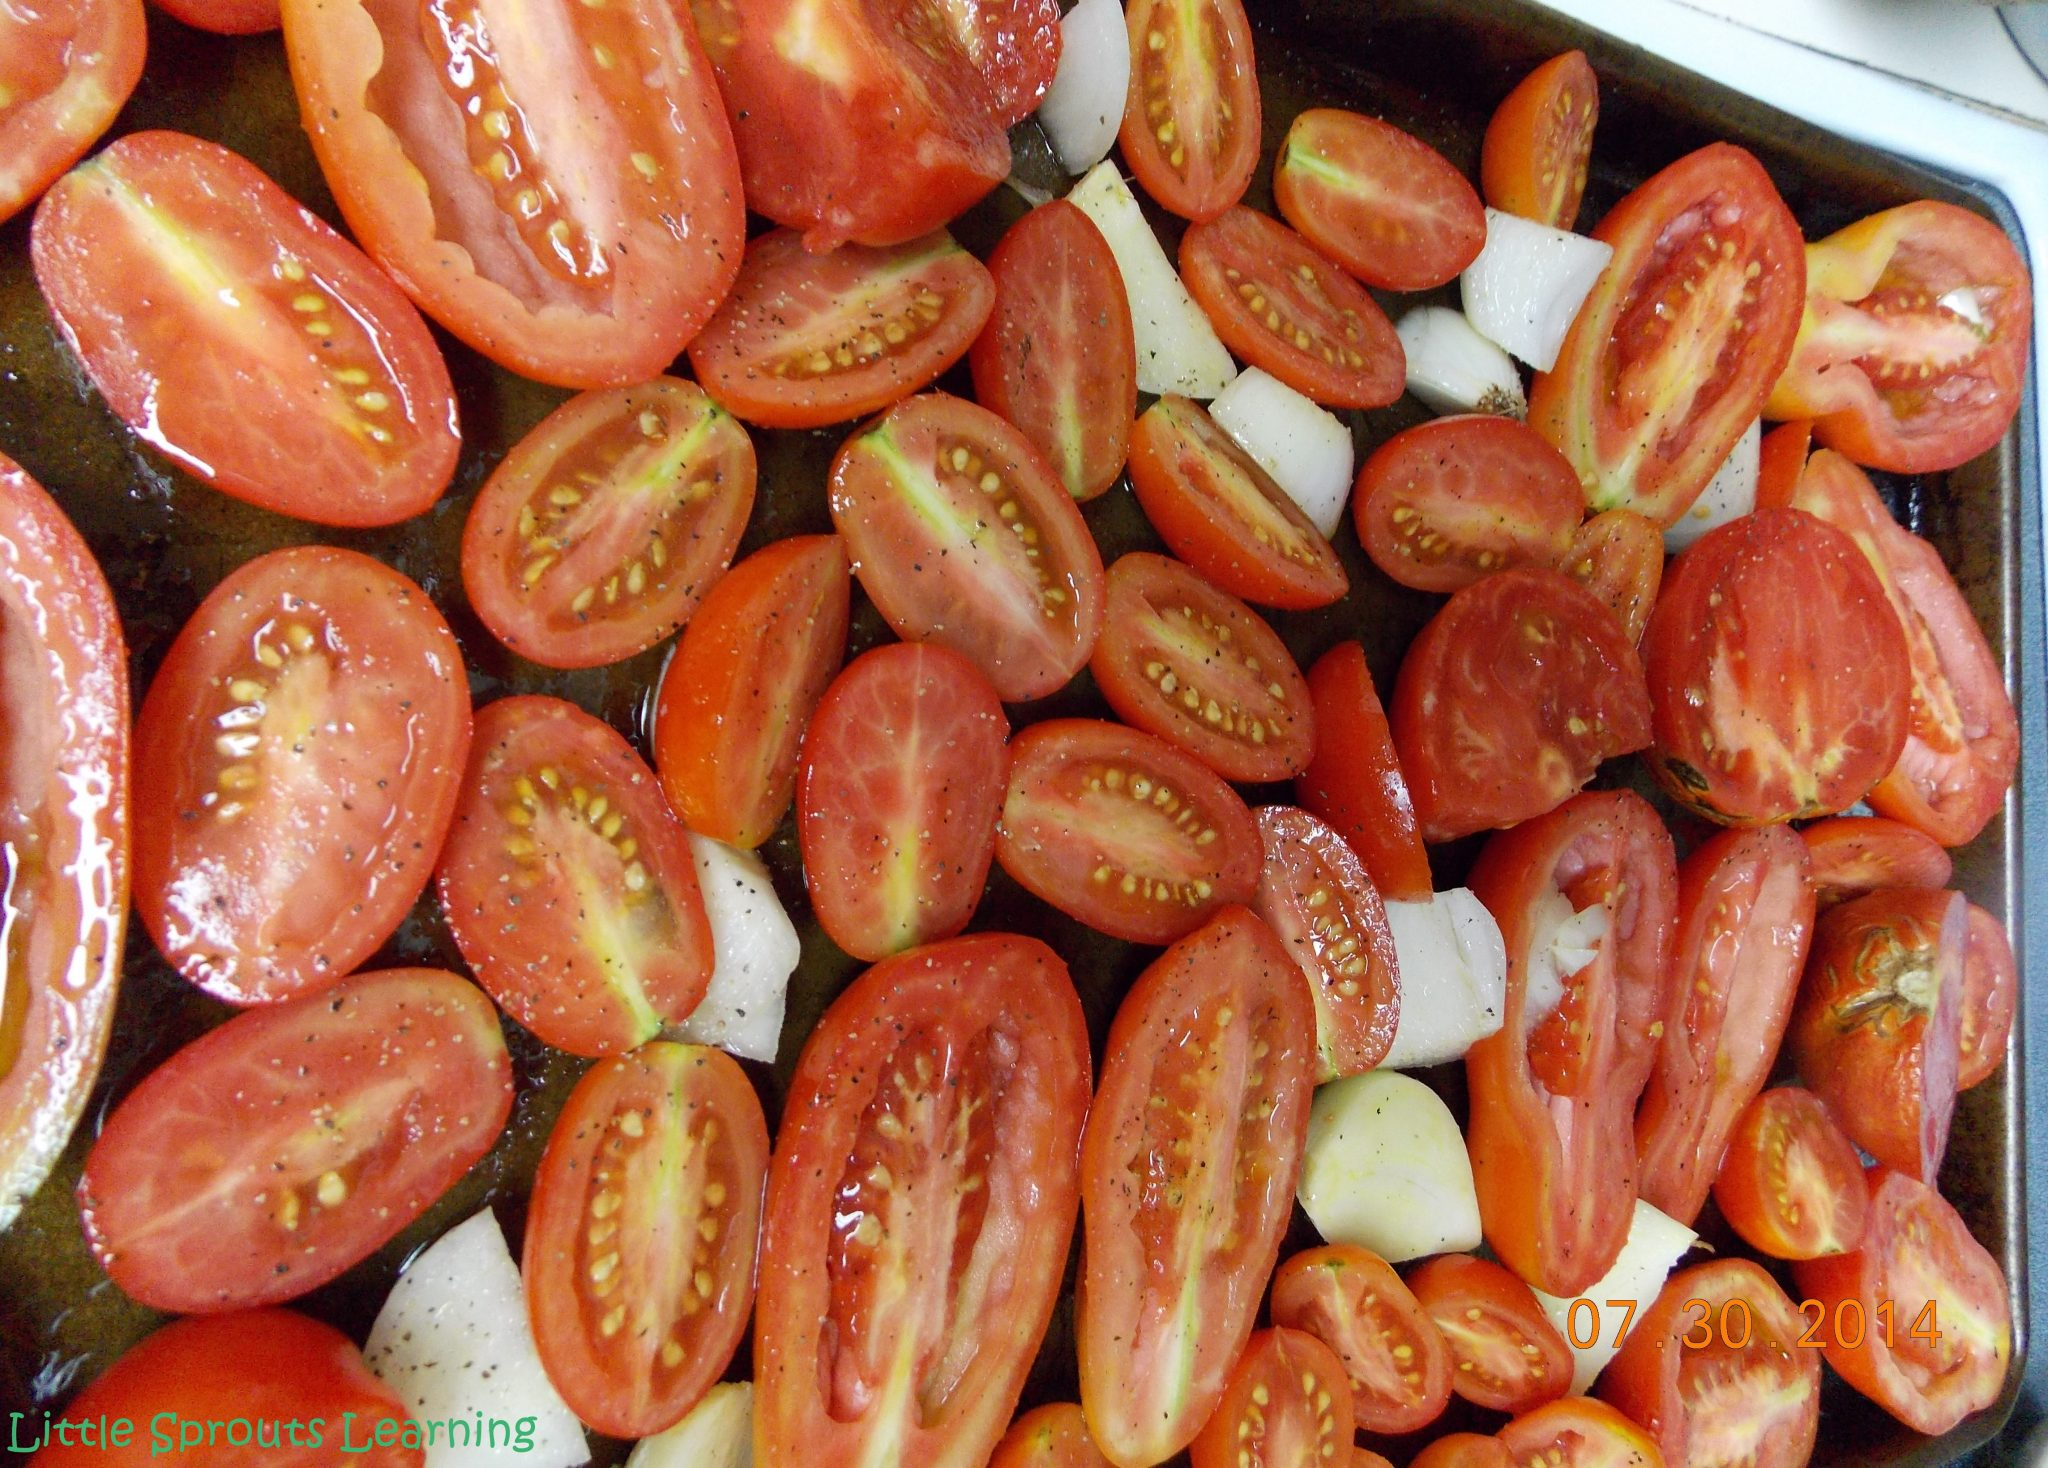 tomatoes, onions and garlic tossed in olive oil, salt and pepper on a sheet pan ready to go in the oven to roast.